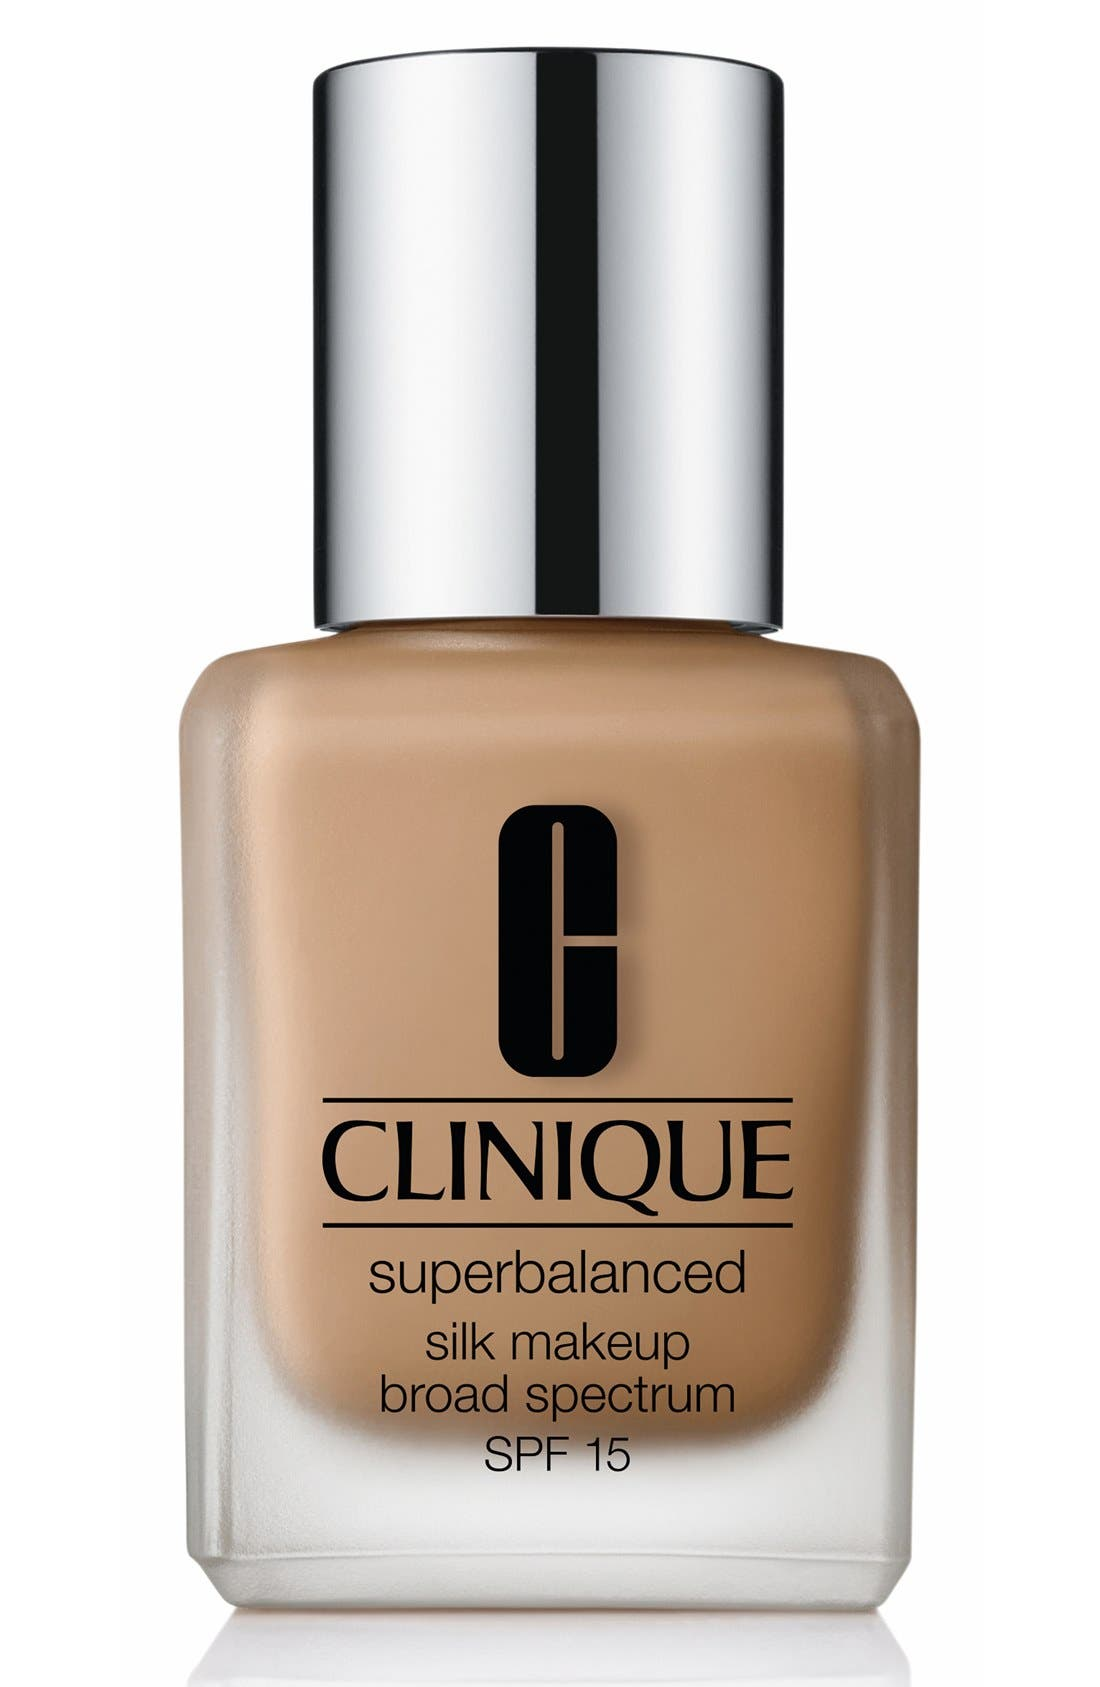 Clinique Superbalanced Silk Makeup Broad Spectrum SPF 15